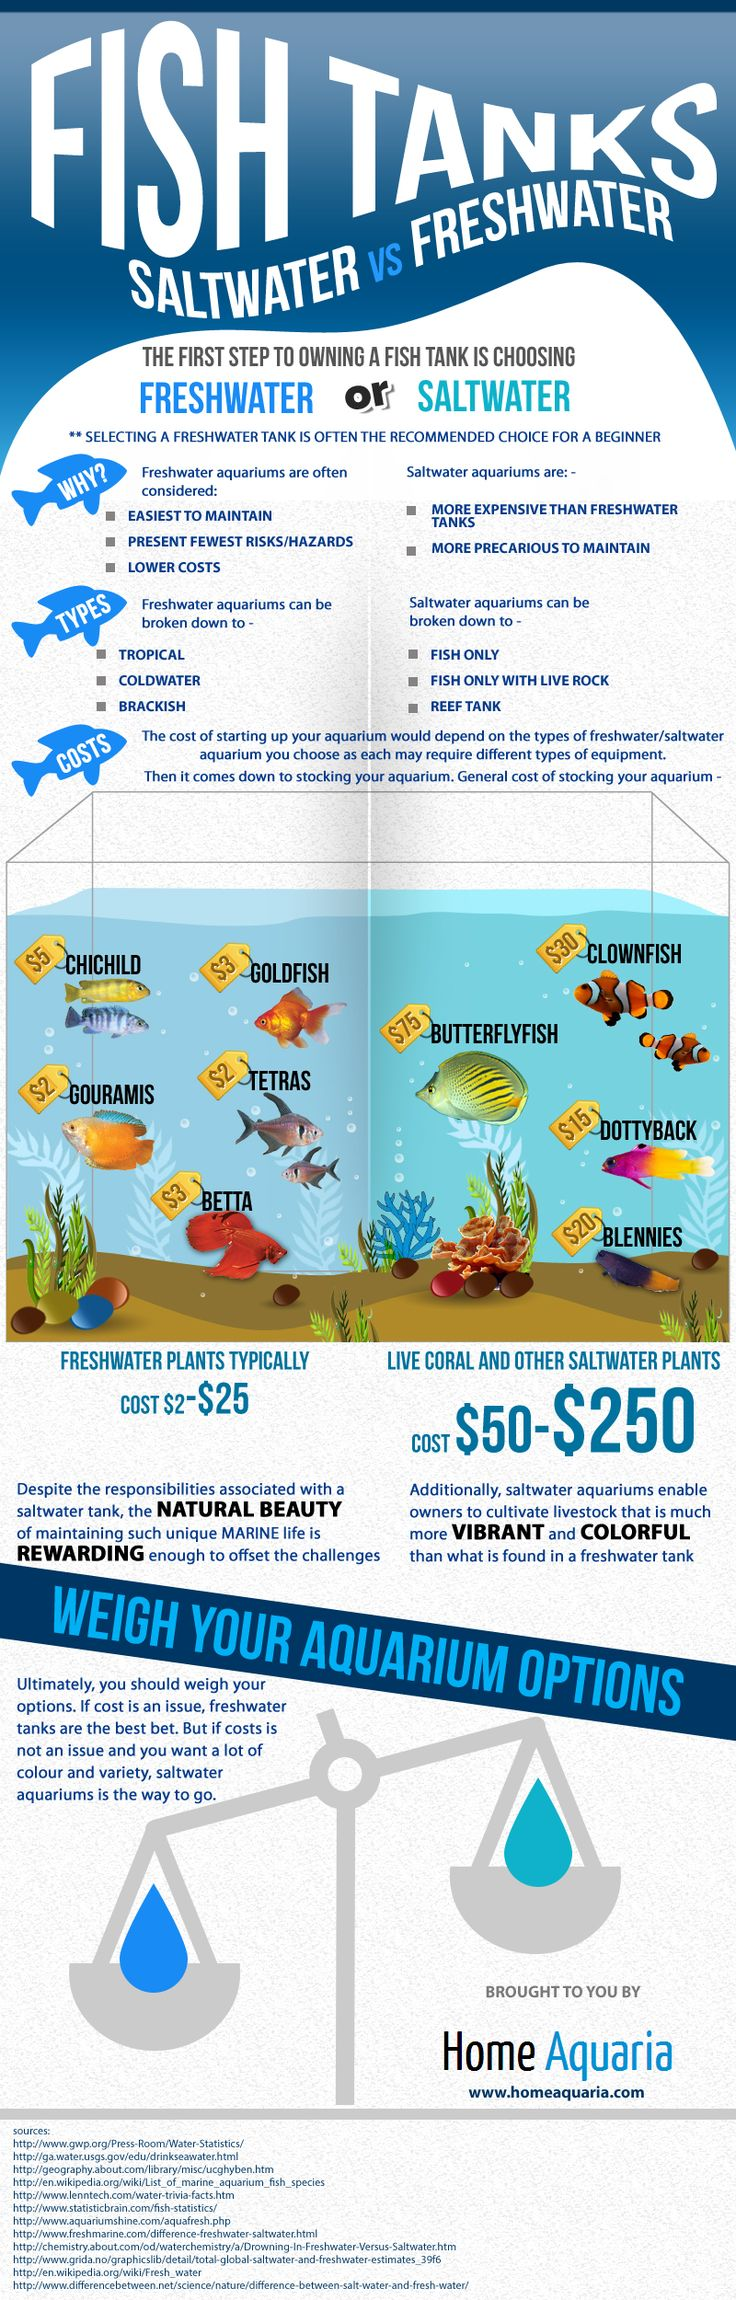 Zombie fish tank youtube - Thinking Of Starting An Aquarium But You Re Unsure On A Saltwater Or A Freshwater Tank This Infographic Will Help You Make Your Decision Read More